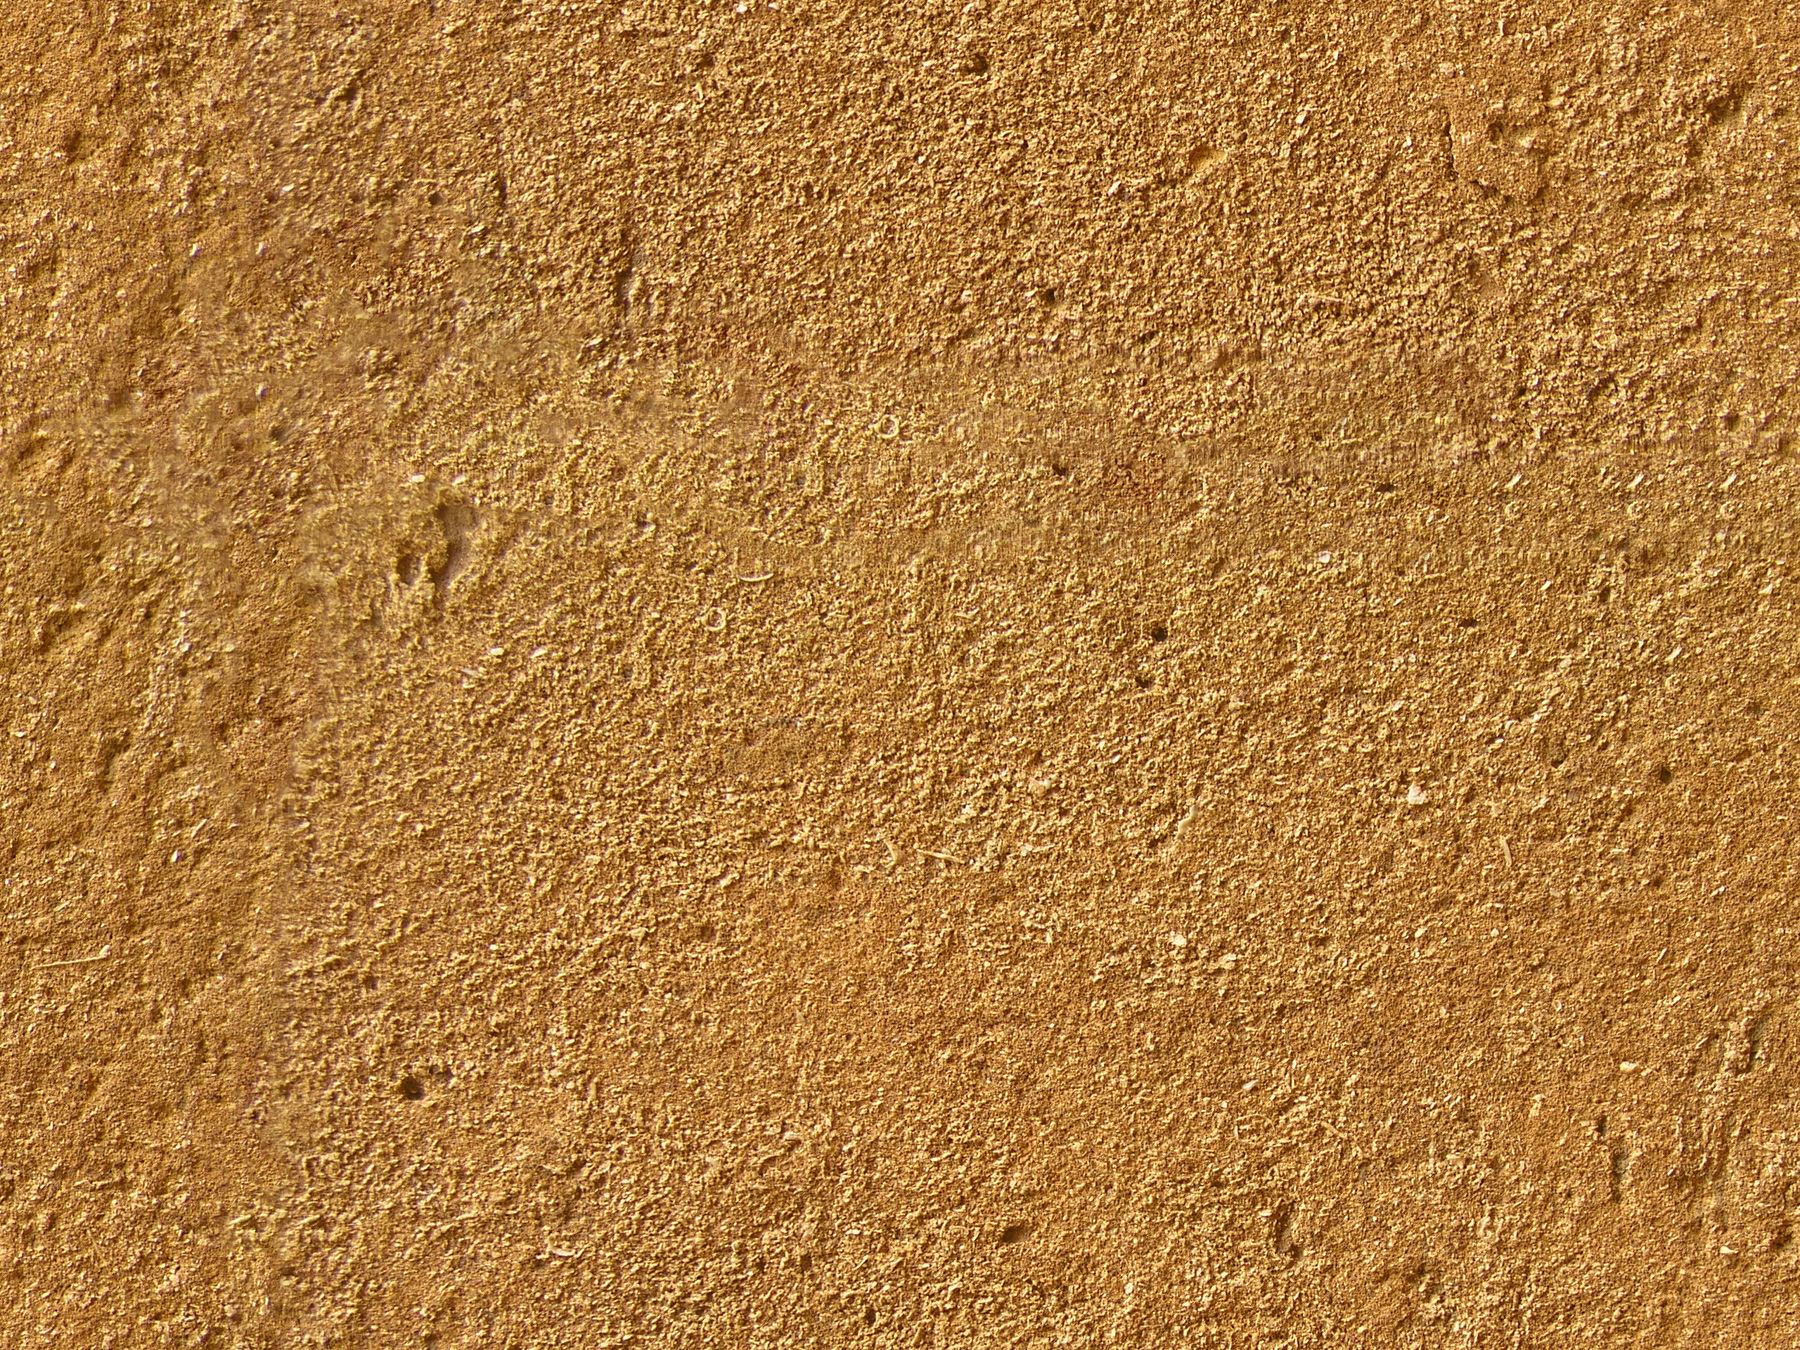 sand texture, sand, texture sand, beach, background, background, download photo, sand